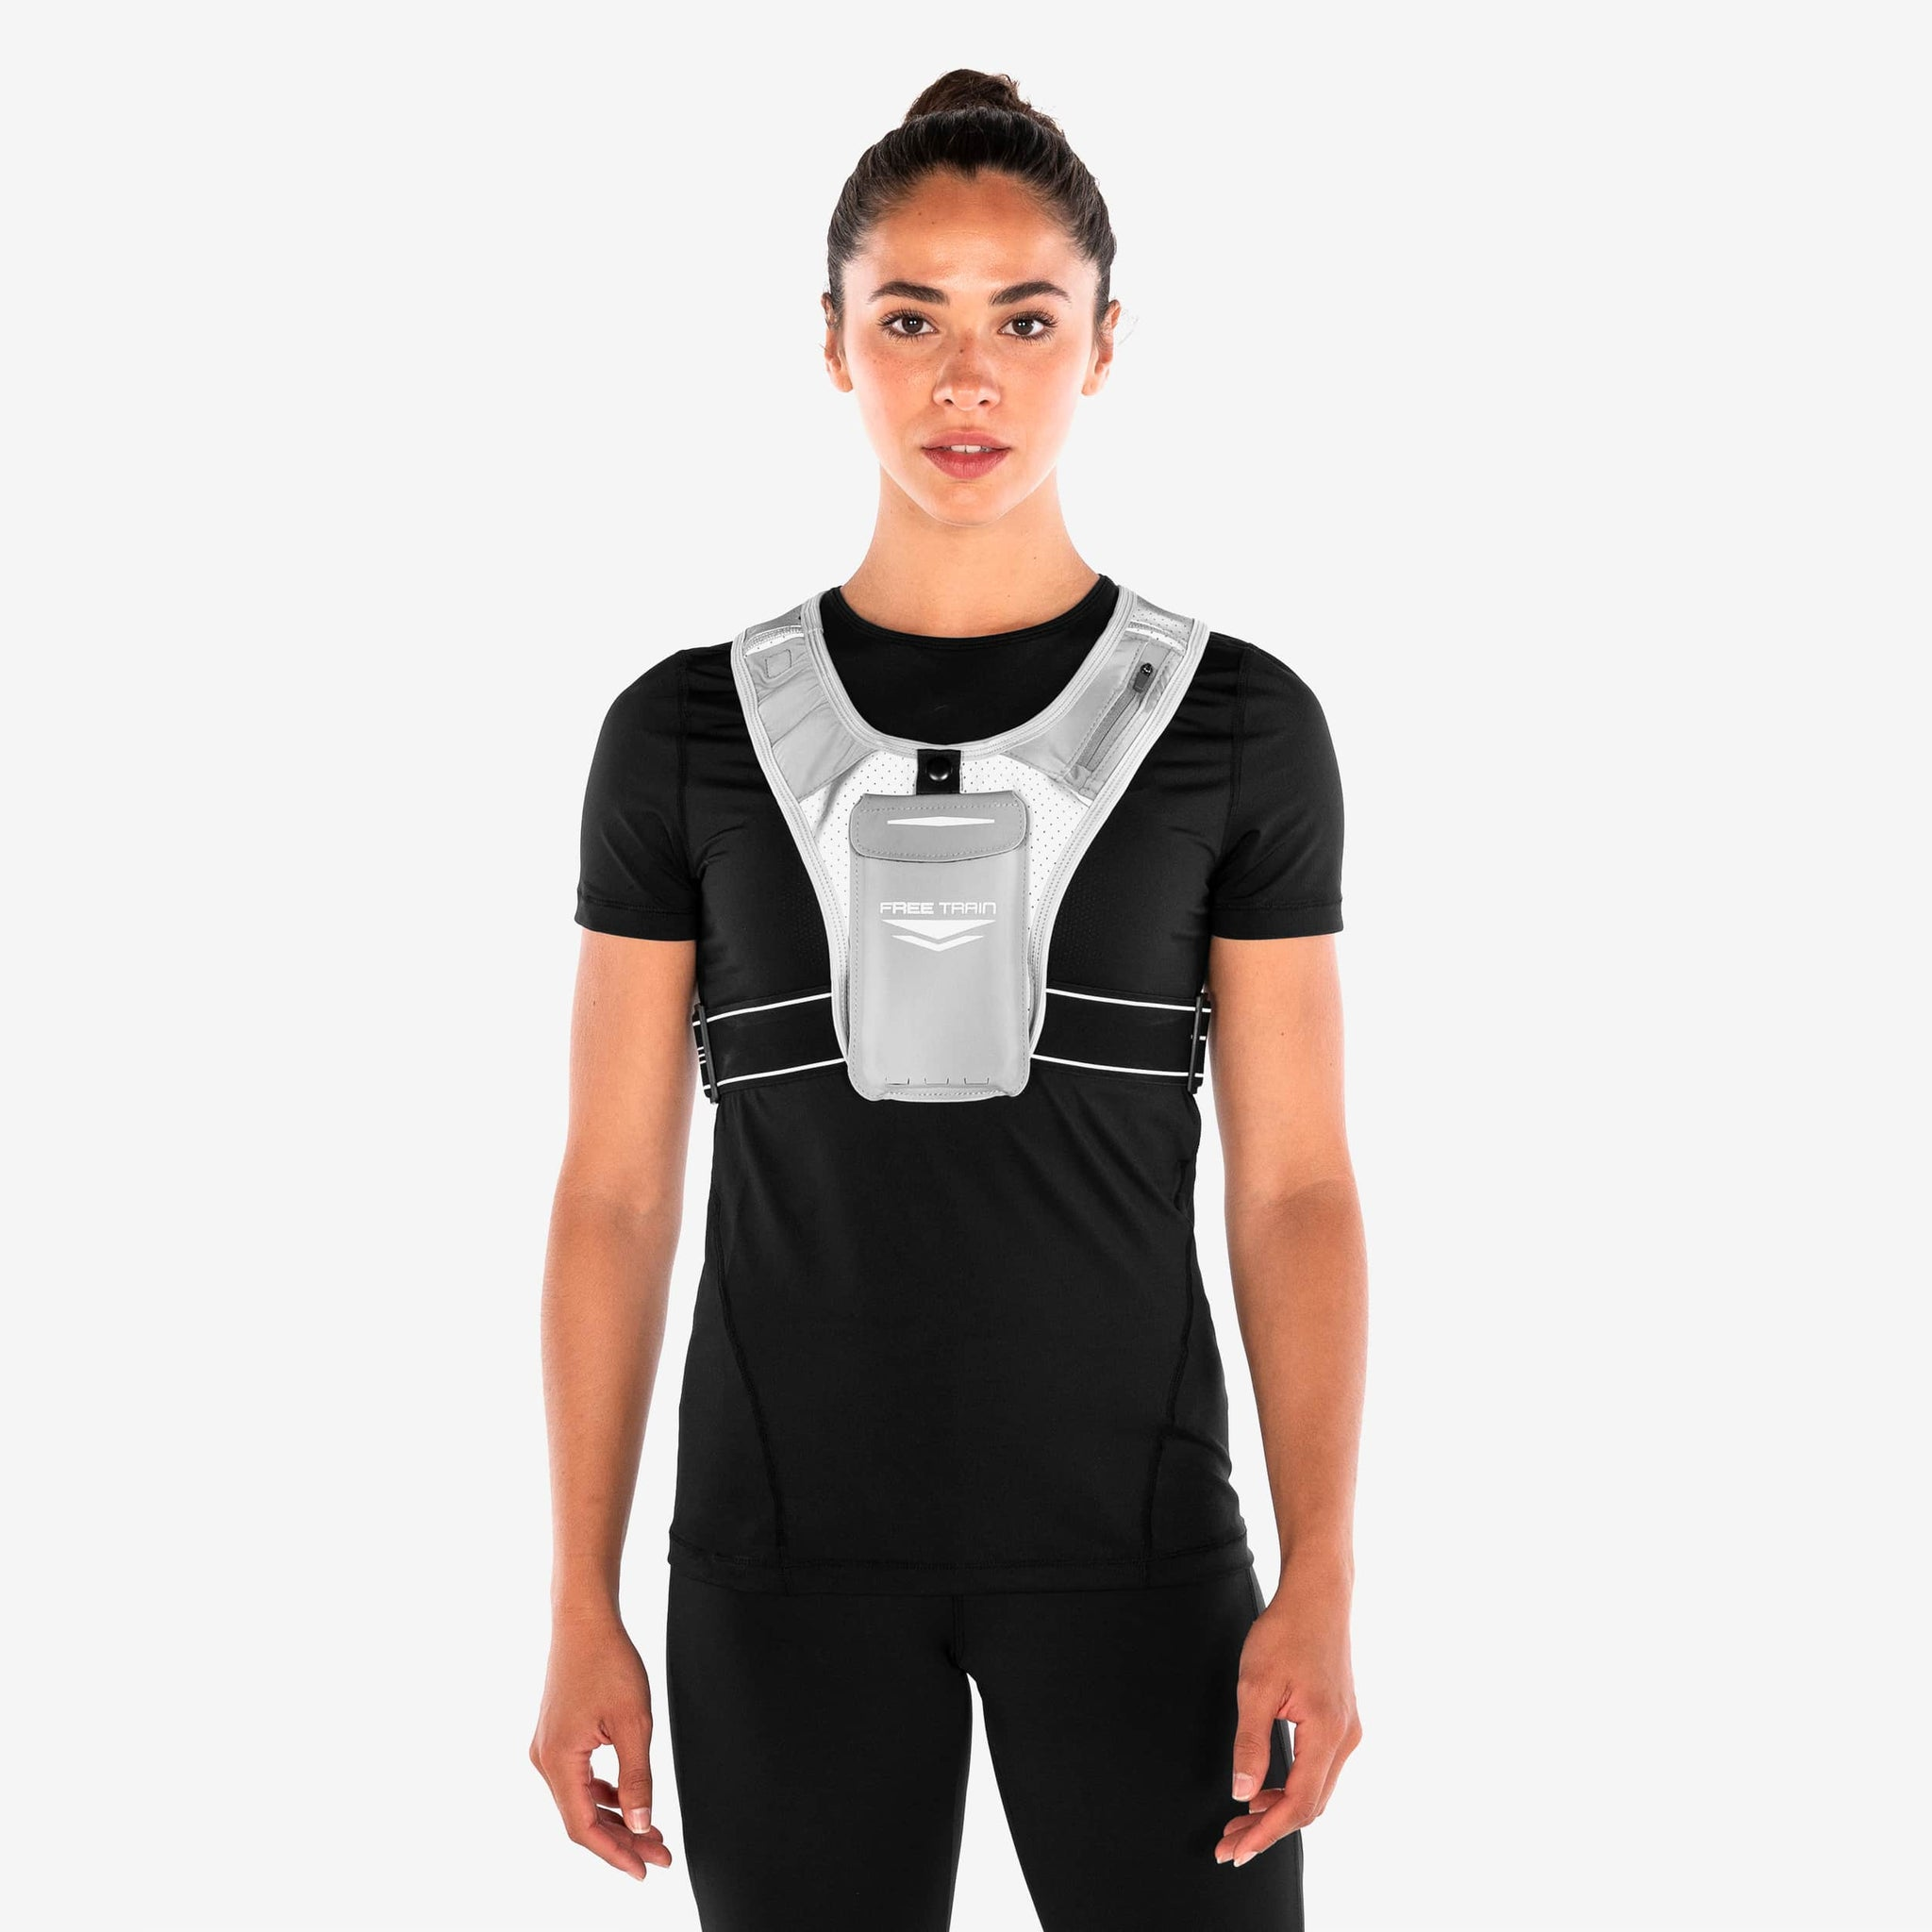 Reflective running vest with pockets